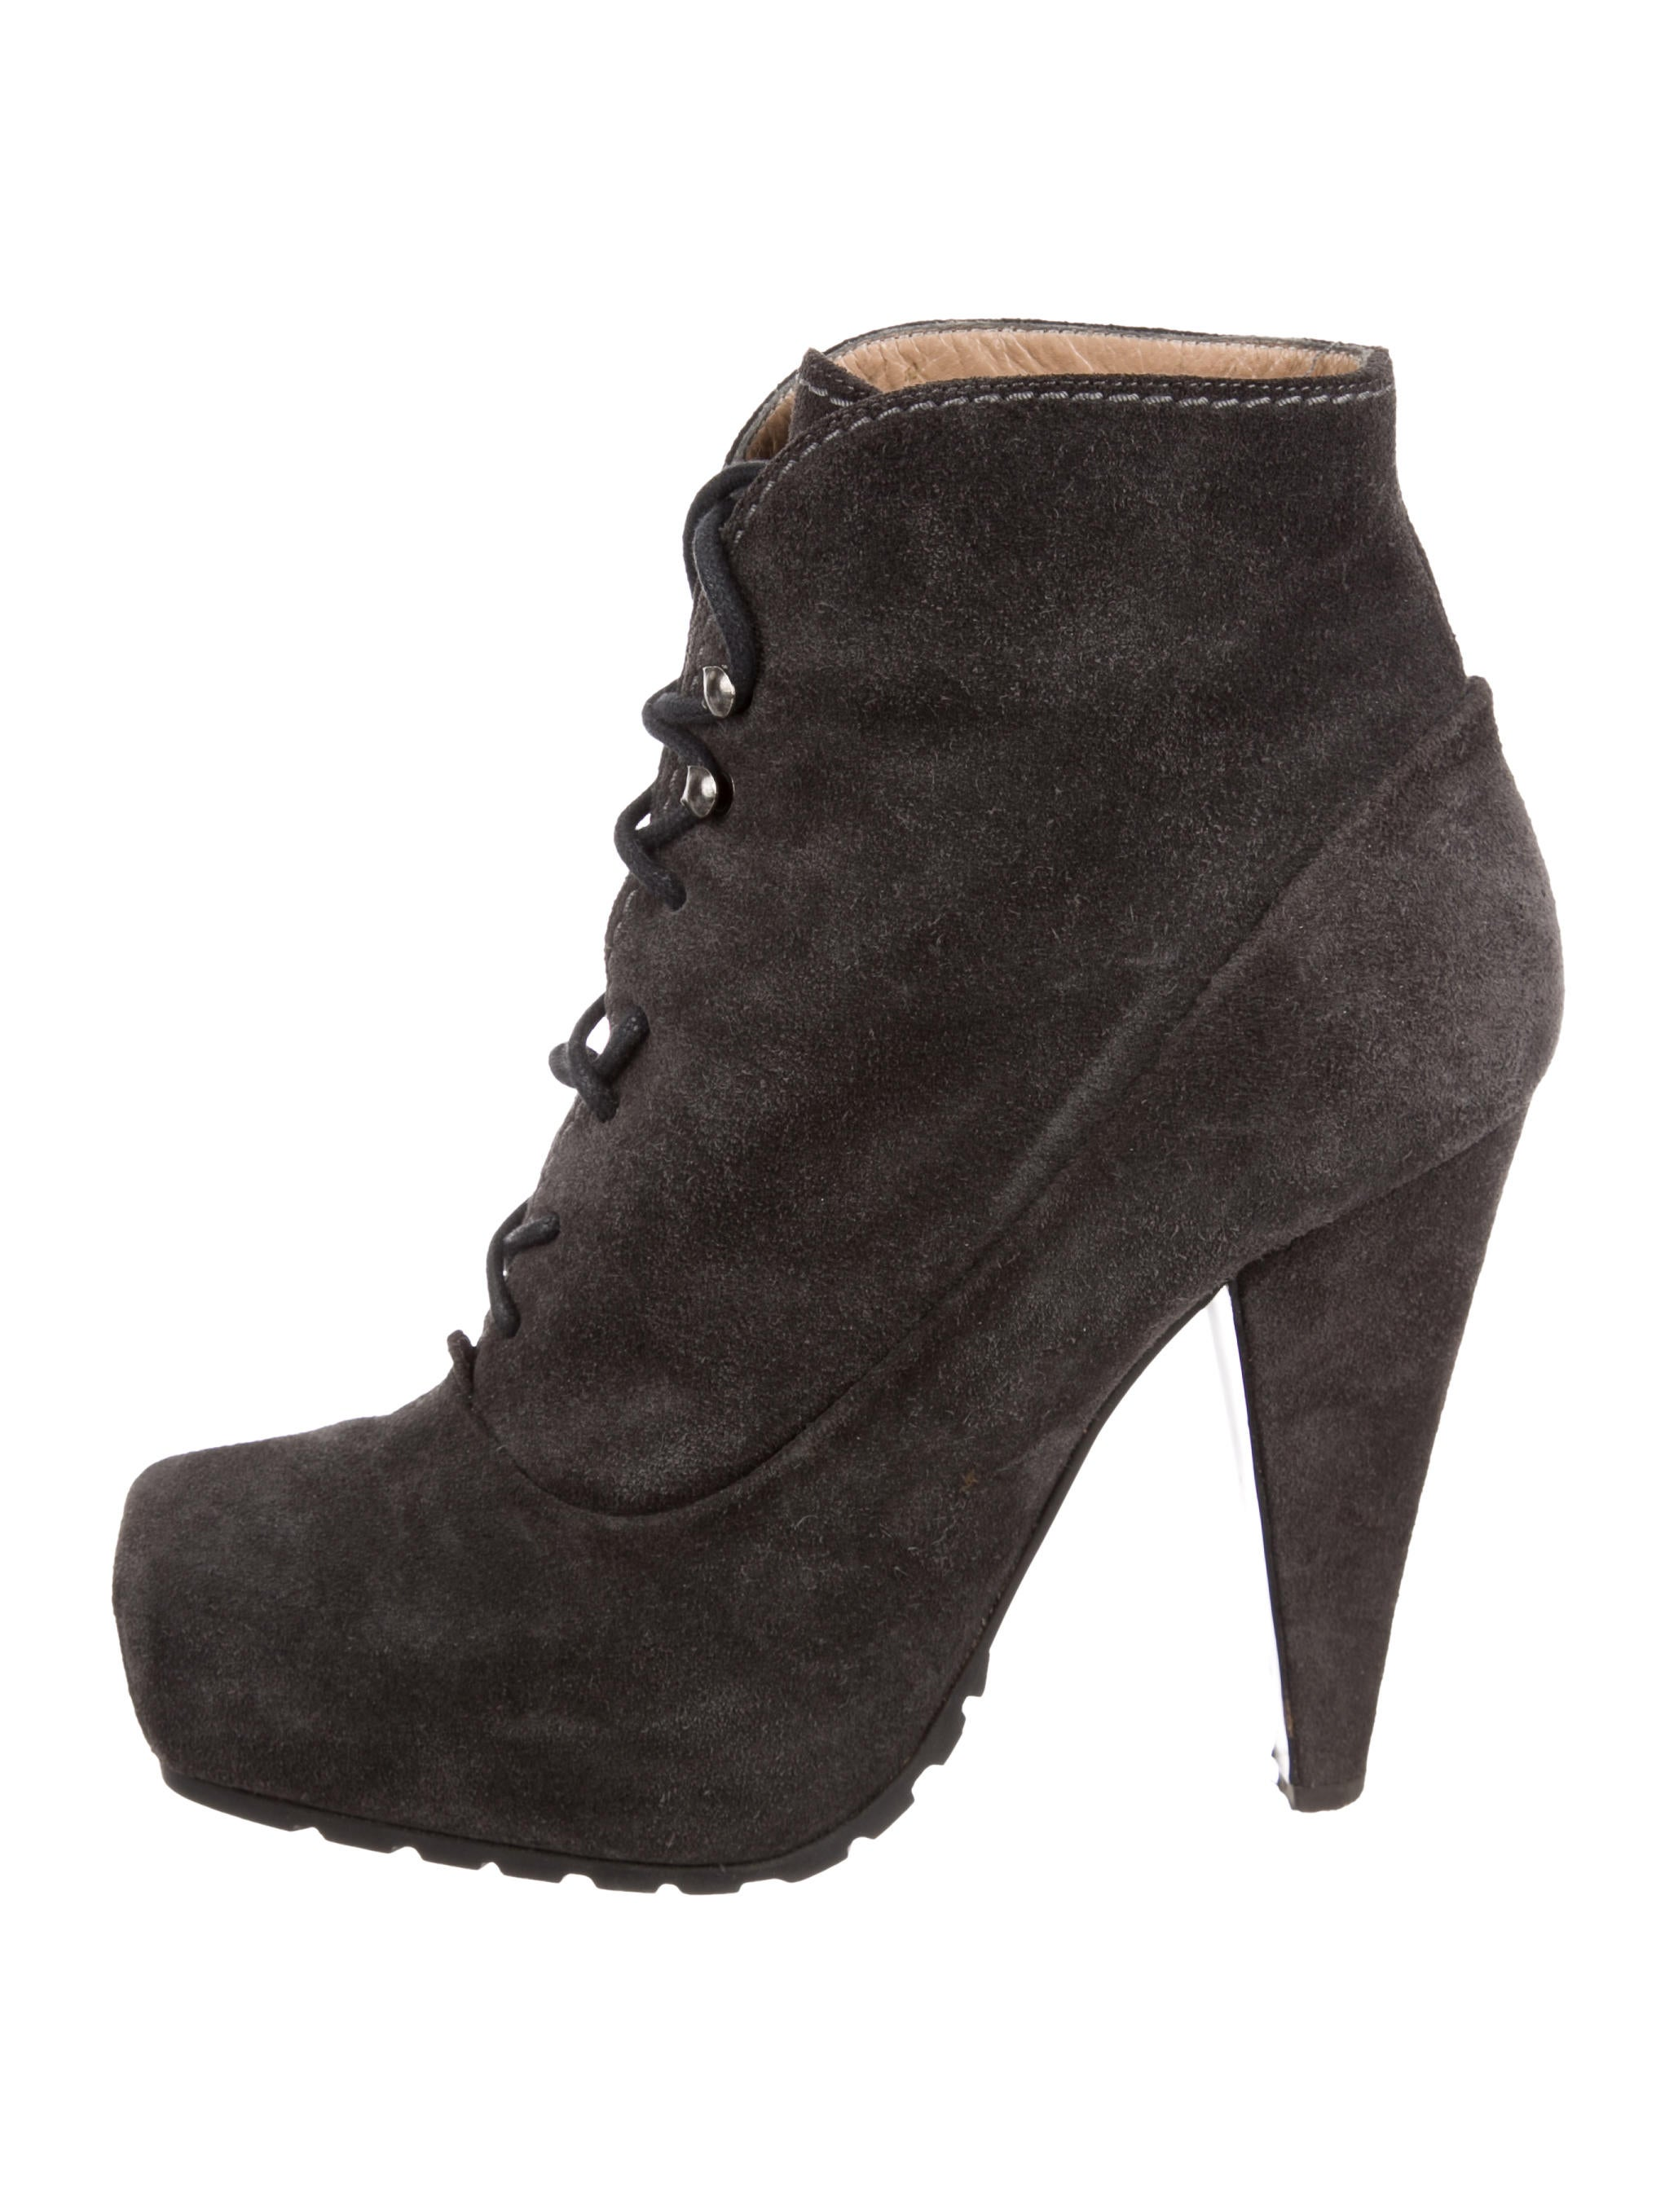 best cheap price largest supplier cheap price Proenza Schouler Square-Toe Suede Ankle Boots marketable sale online looking for great deals cheap online d33fcj3u